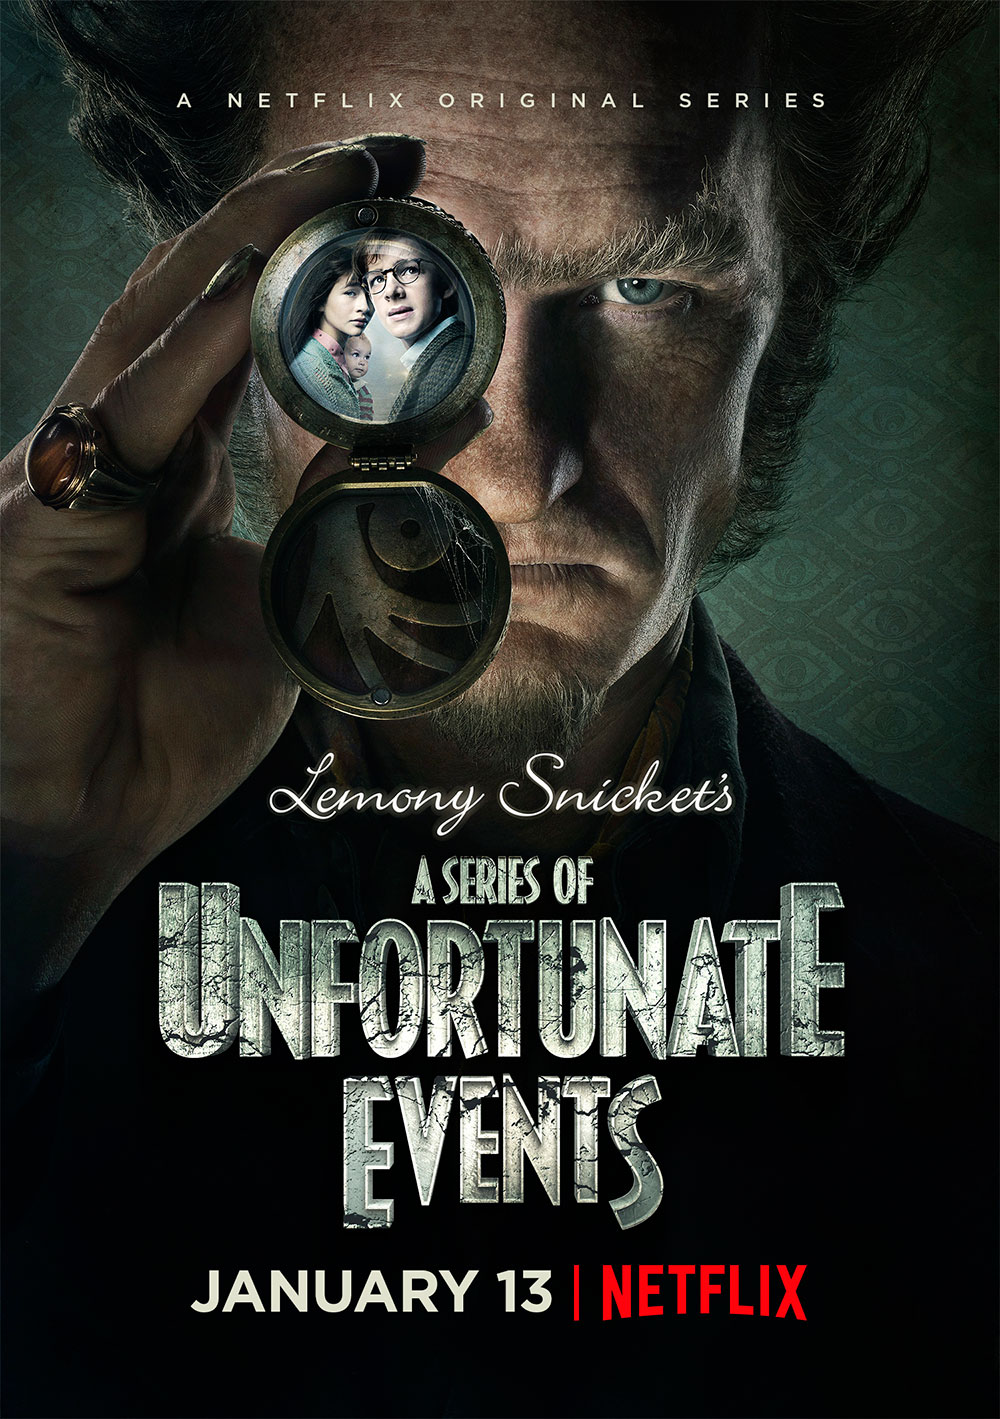 lemony-snicket_s-a-series-of-unfortunate-events-poster